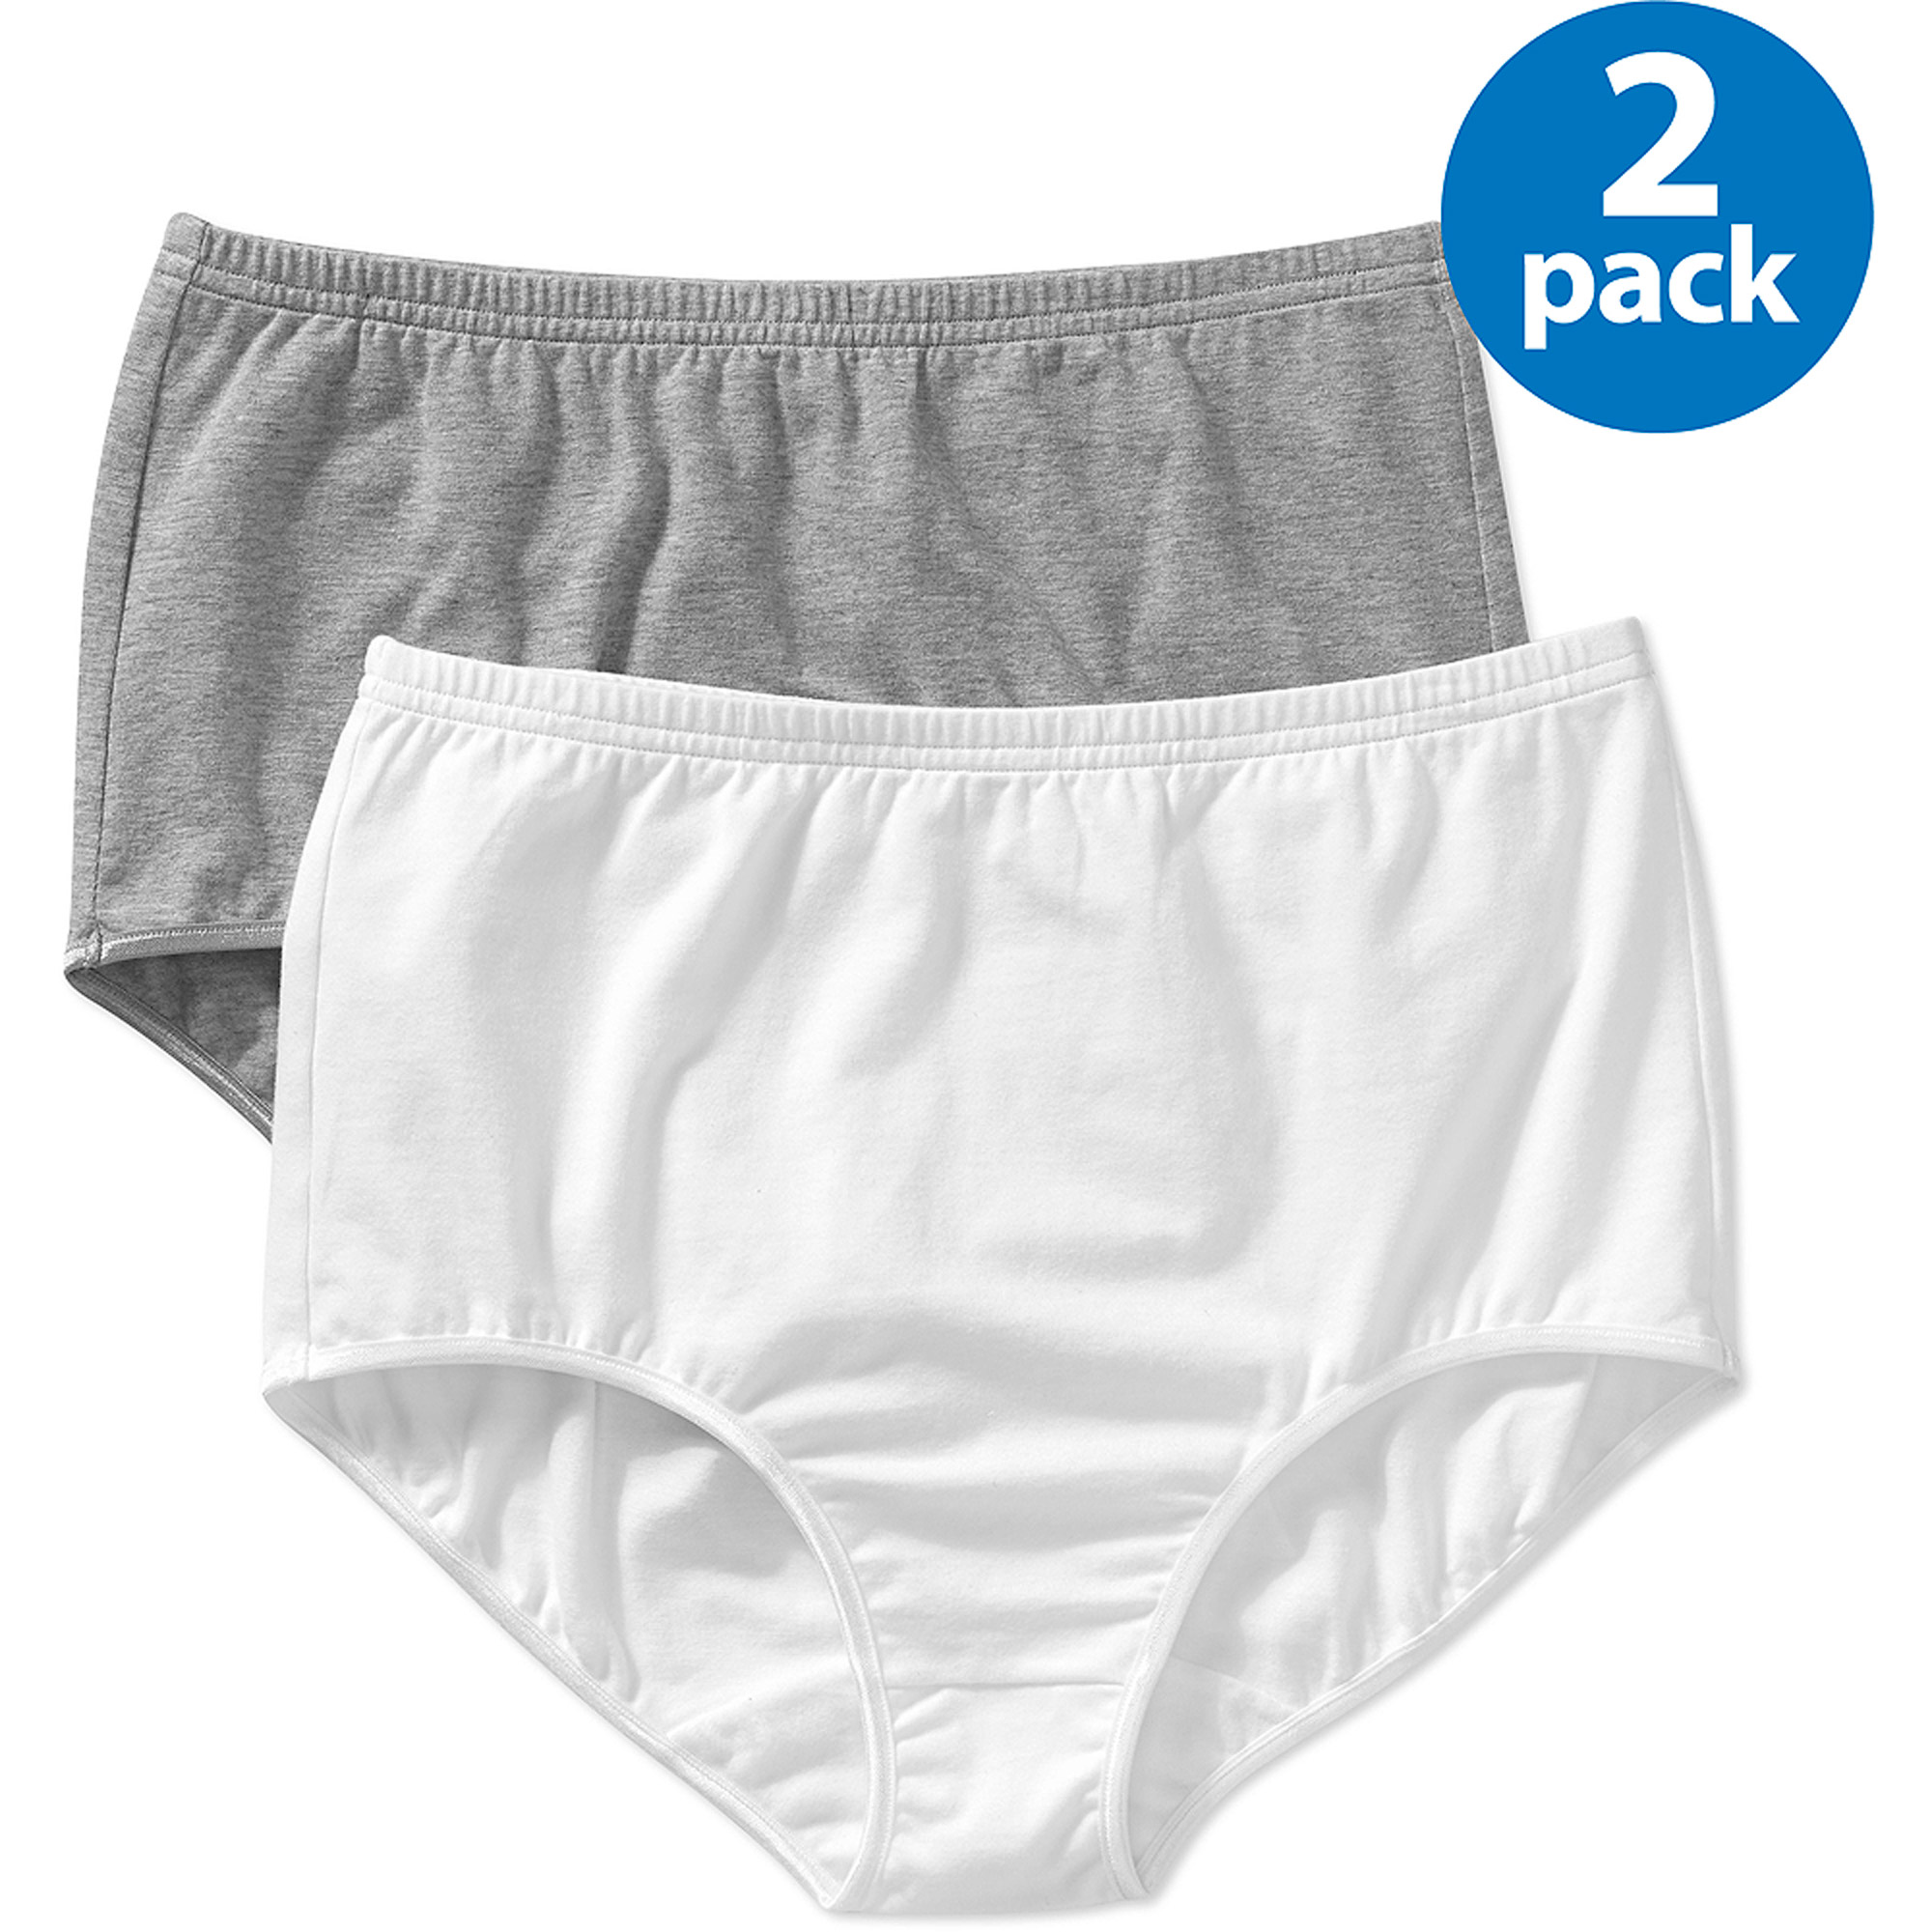 Best Fitting Panty Cotton Stretch Brief, 2PK